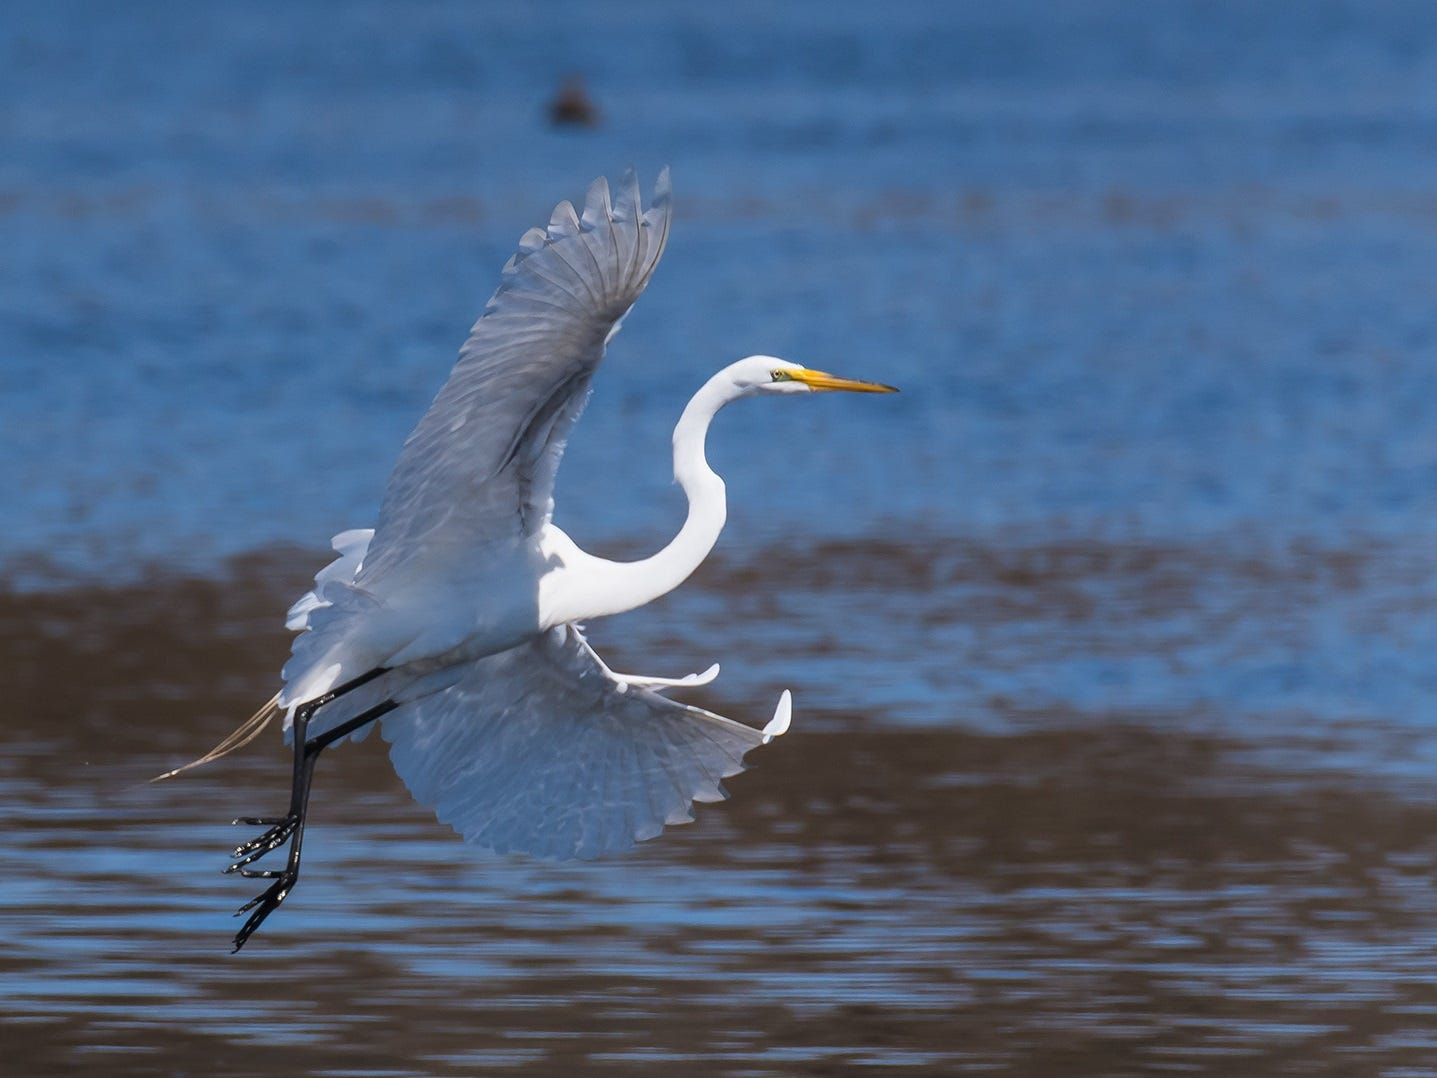 The Meadowlands Birding Festival will be held on Sept. 15 at Meadowlands Environment Center in Lyndhurst.